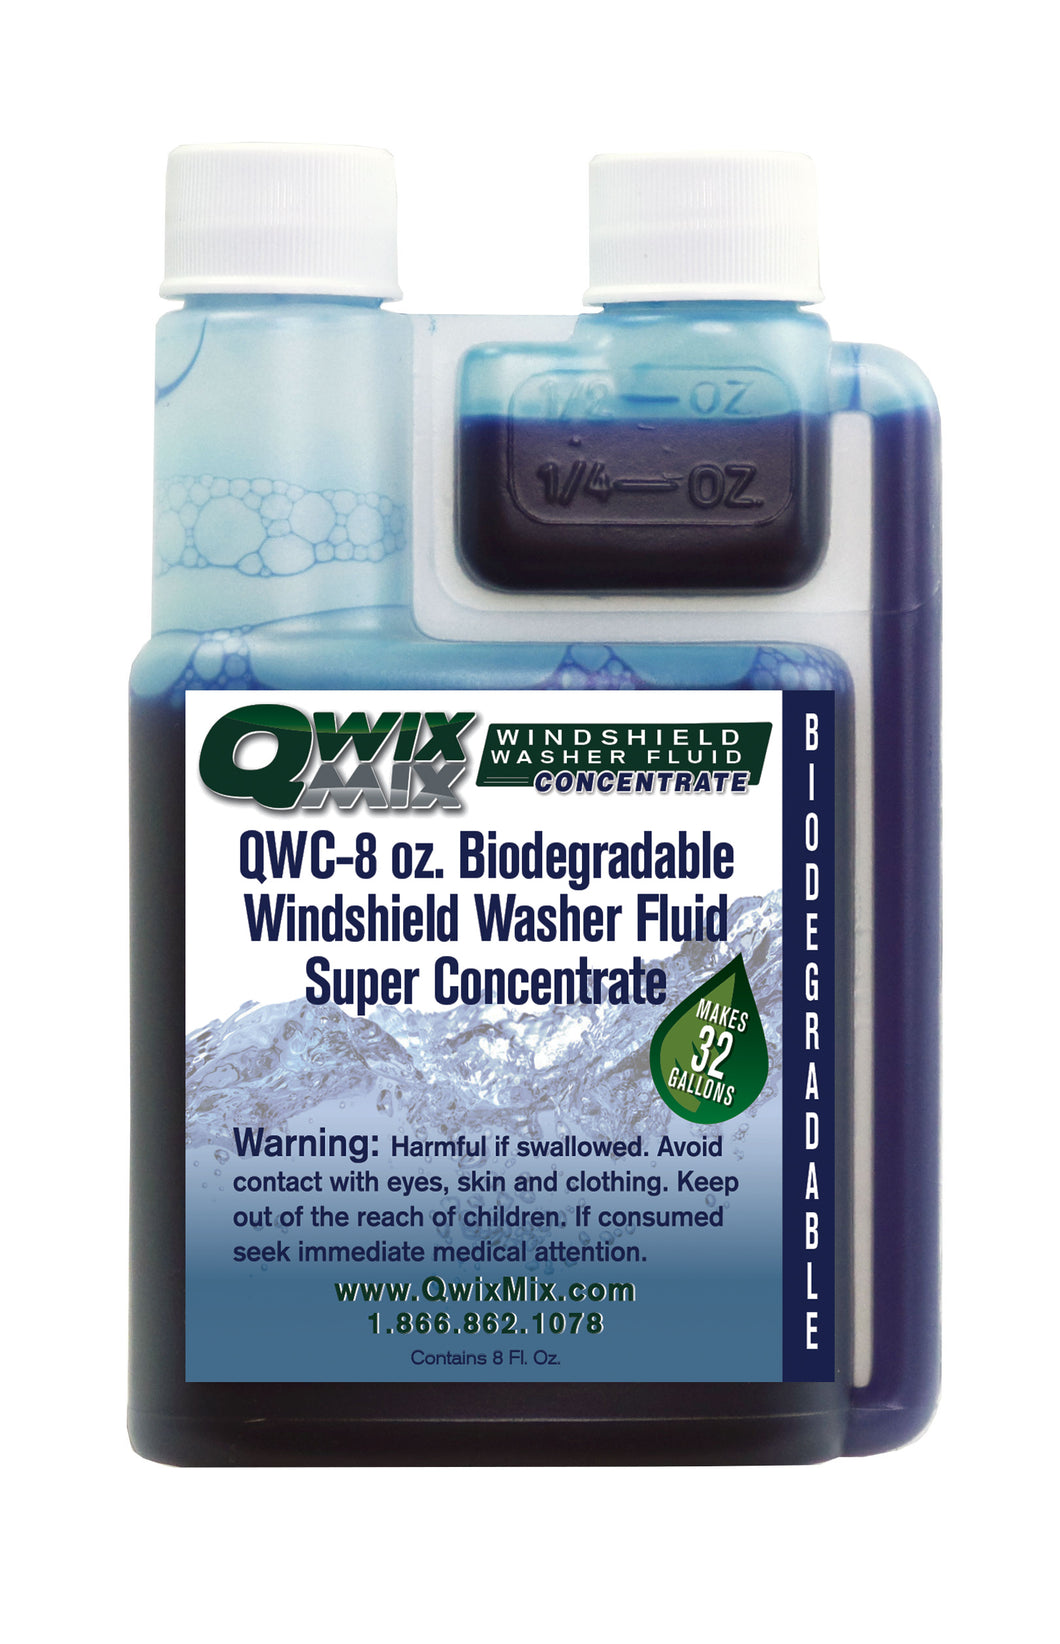 QWC-8 oz. Biodegradable Windshield Washer Fluid Concentrate